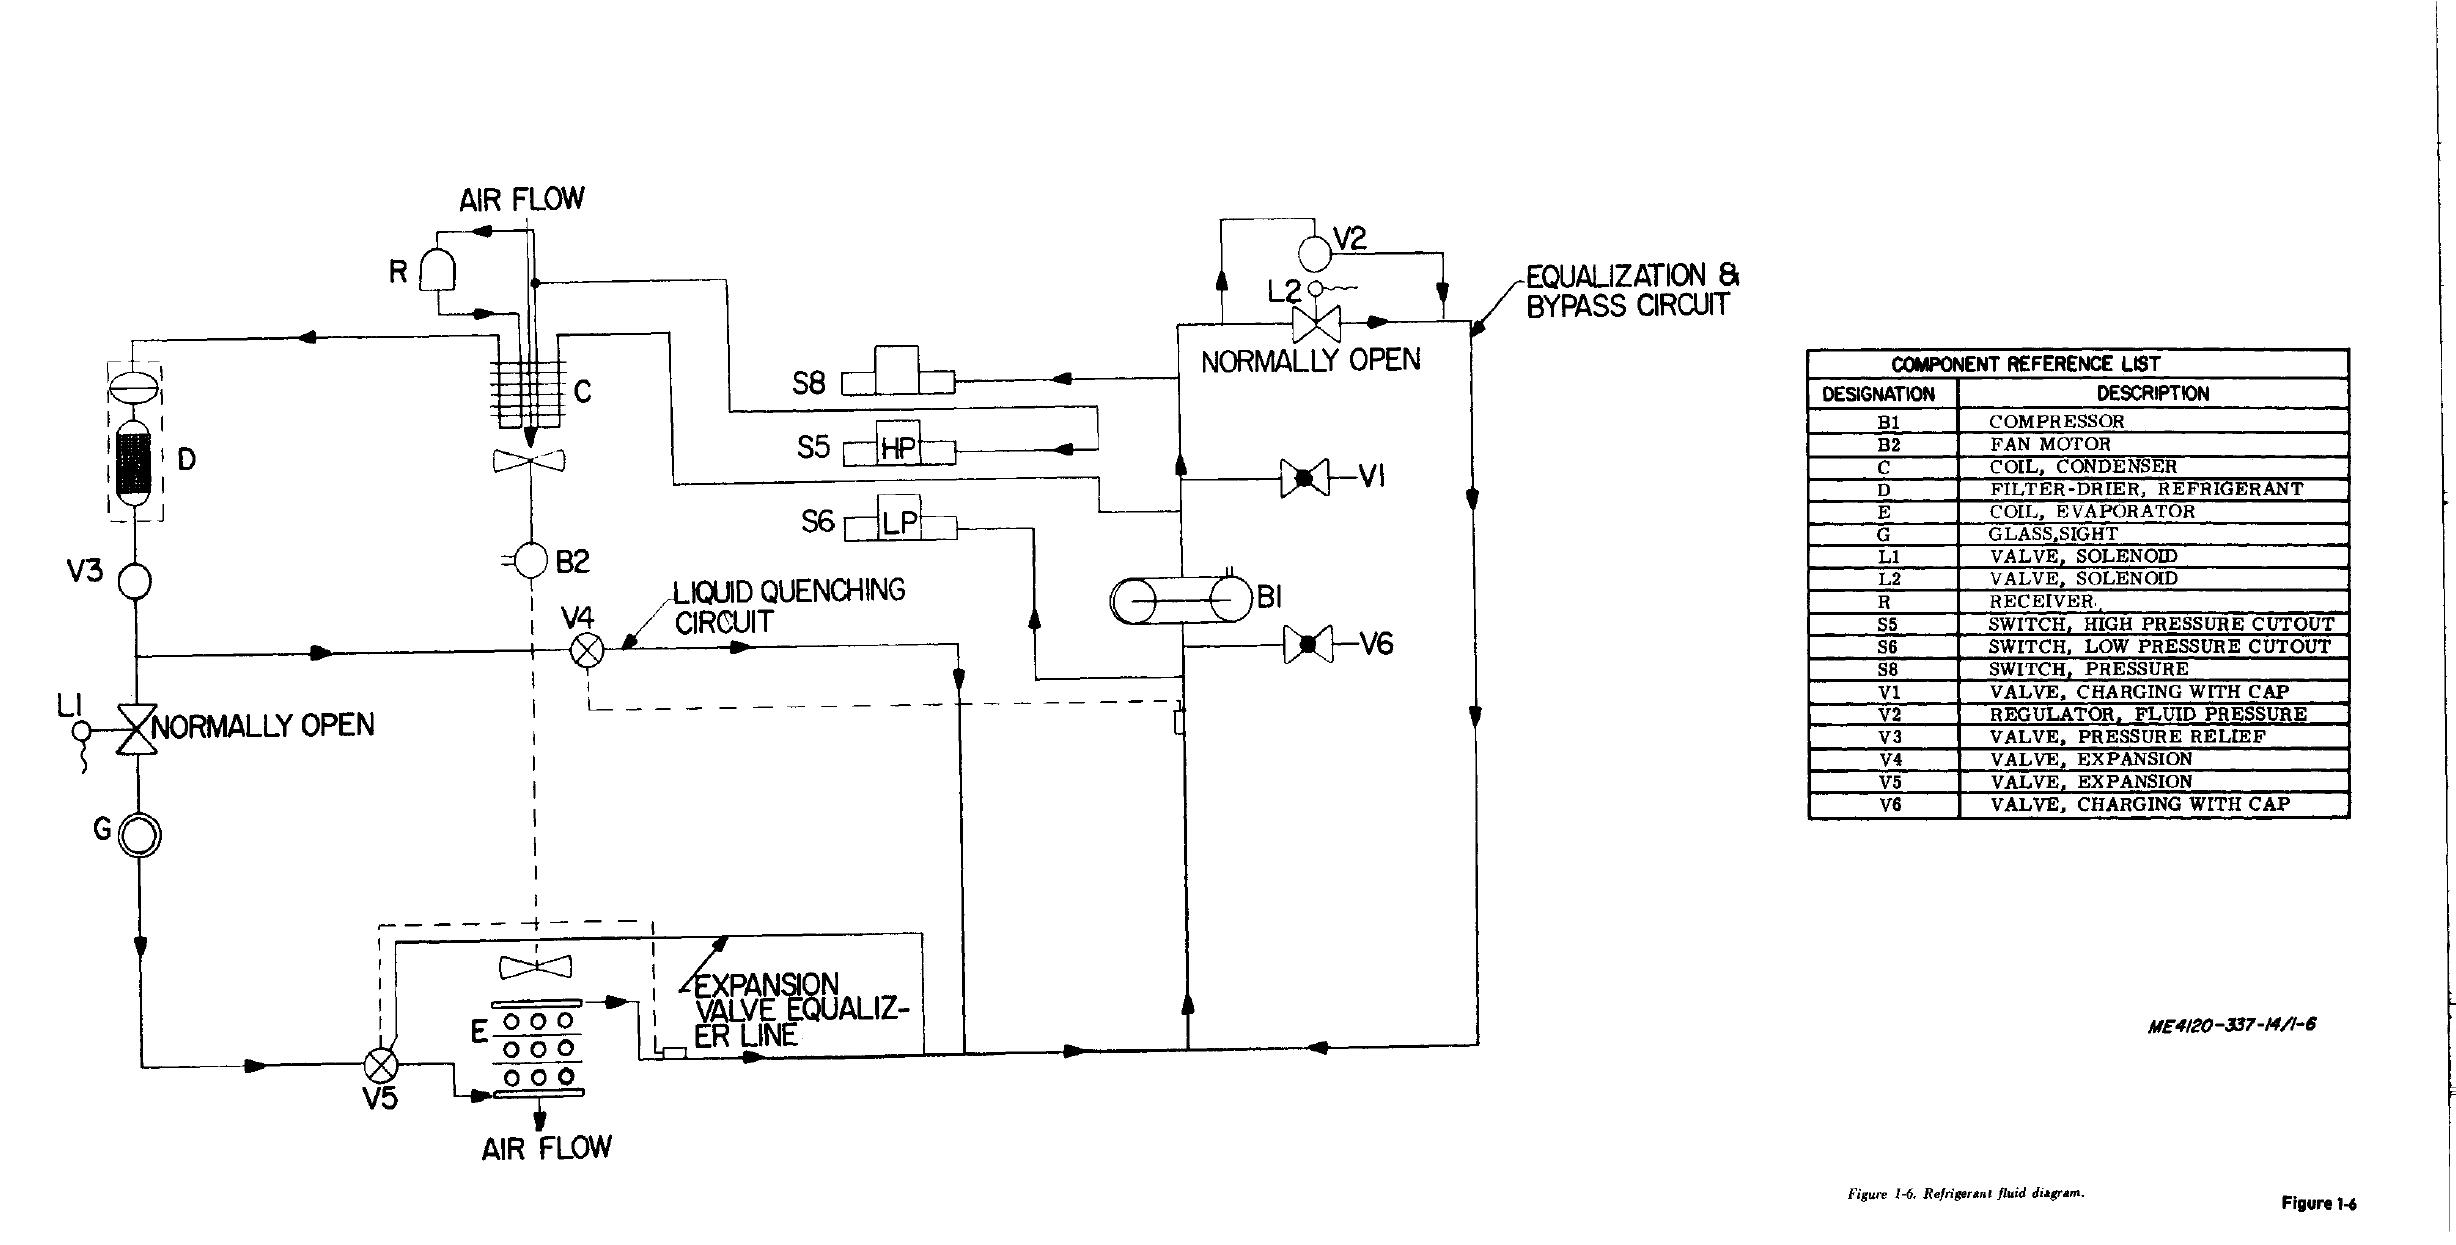 230 volt air conditioner wiring diagram for phone wall socket refrigeration schematic